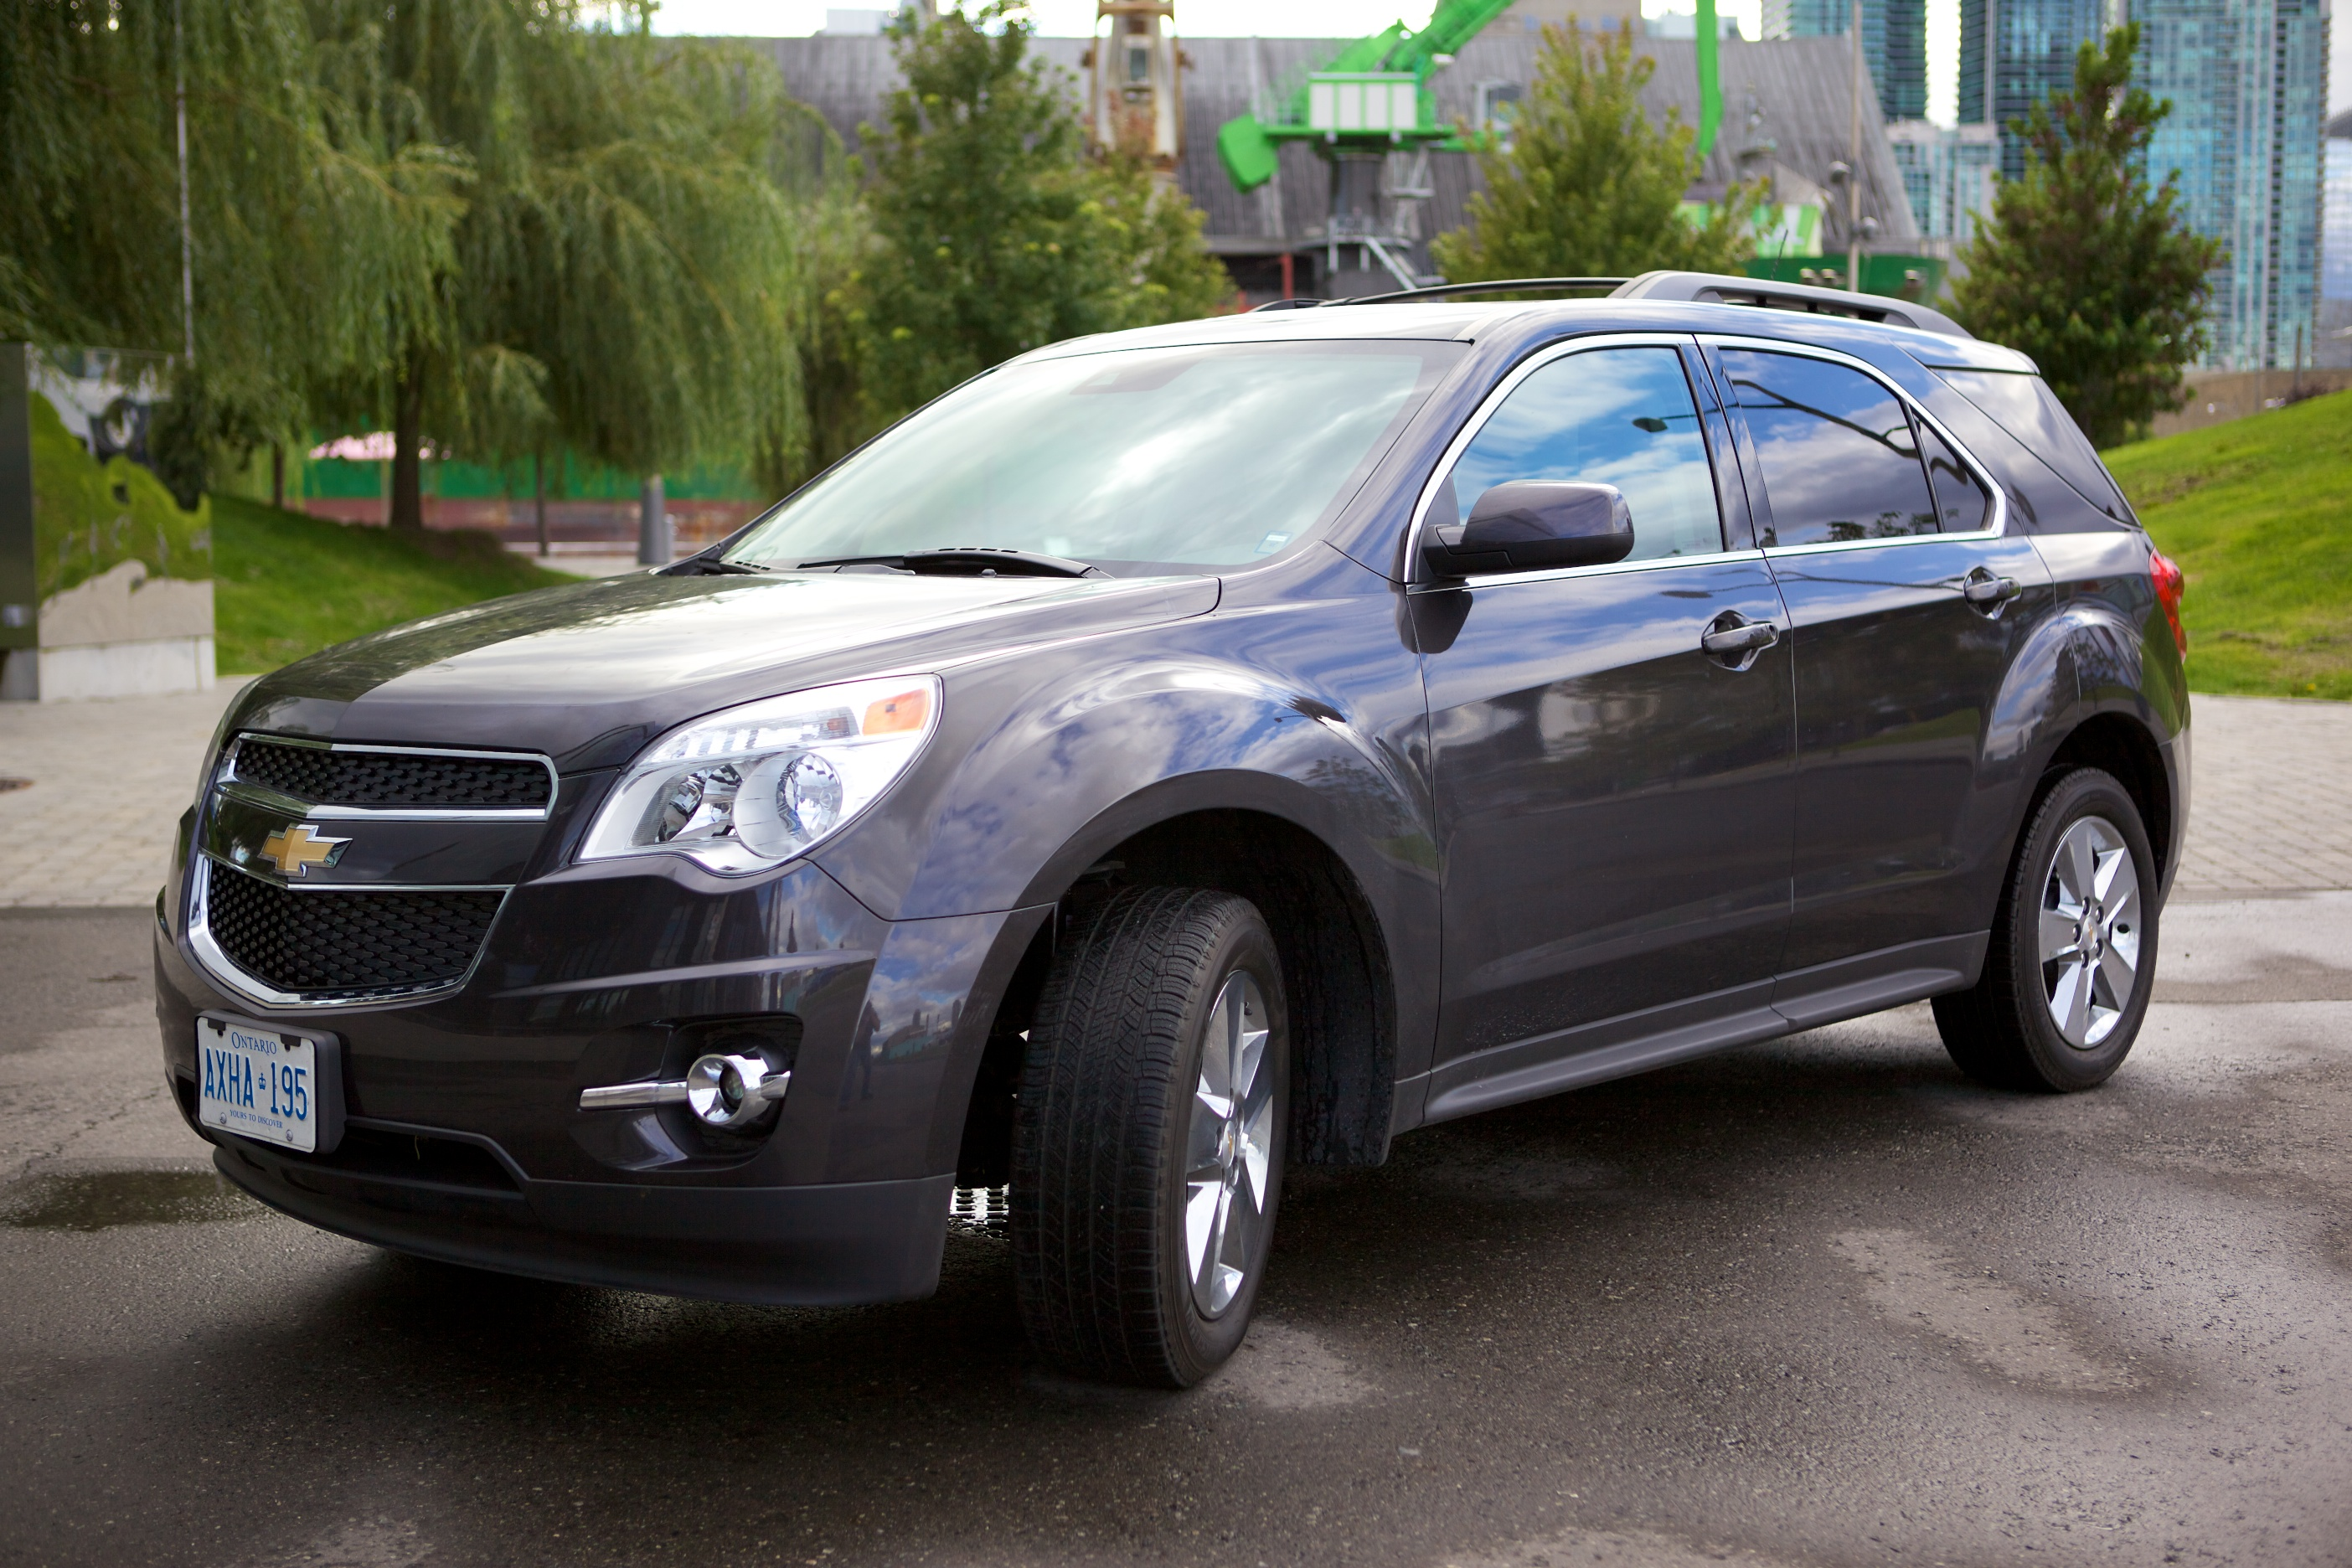 2013 chevrolet equinox pictures information and specs auto. Black Bedroom Furniture Sets. Home Design Ideas